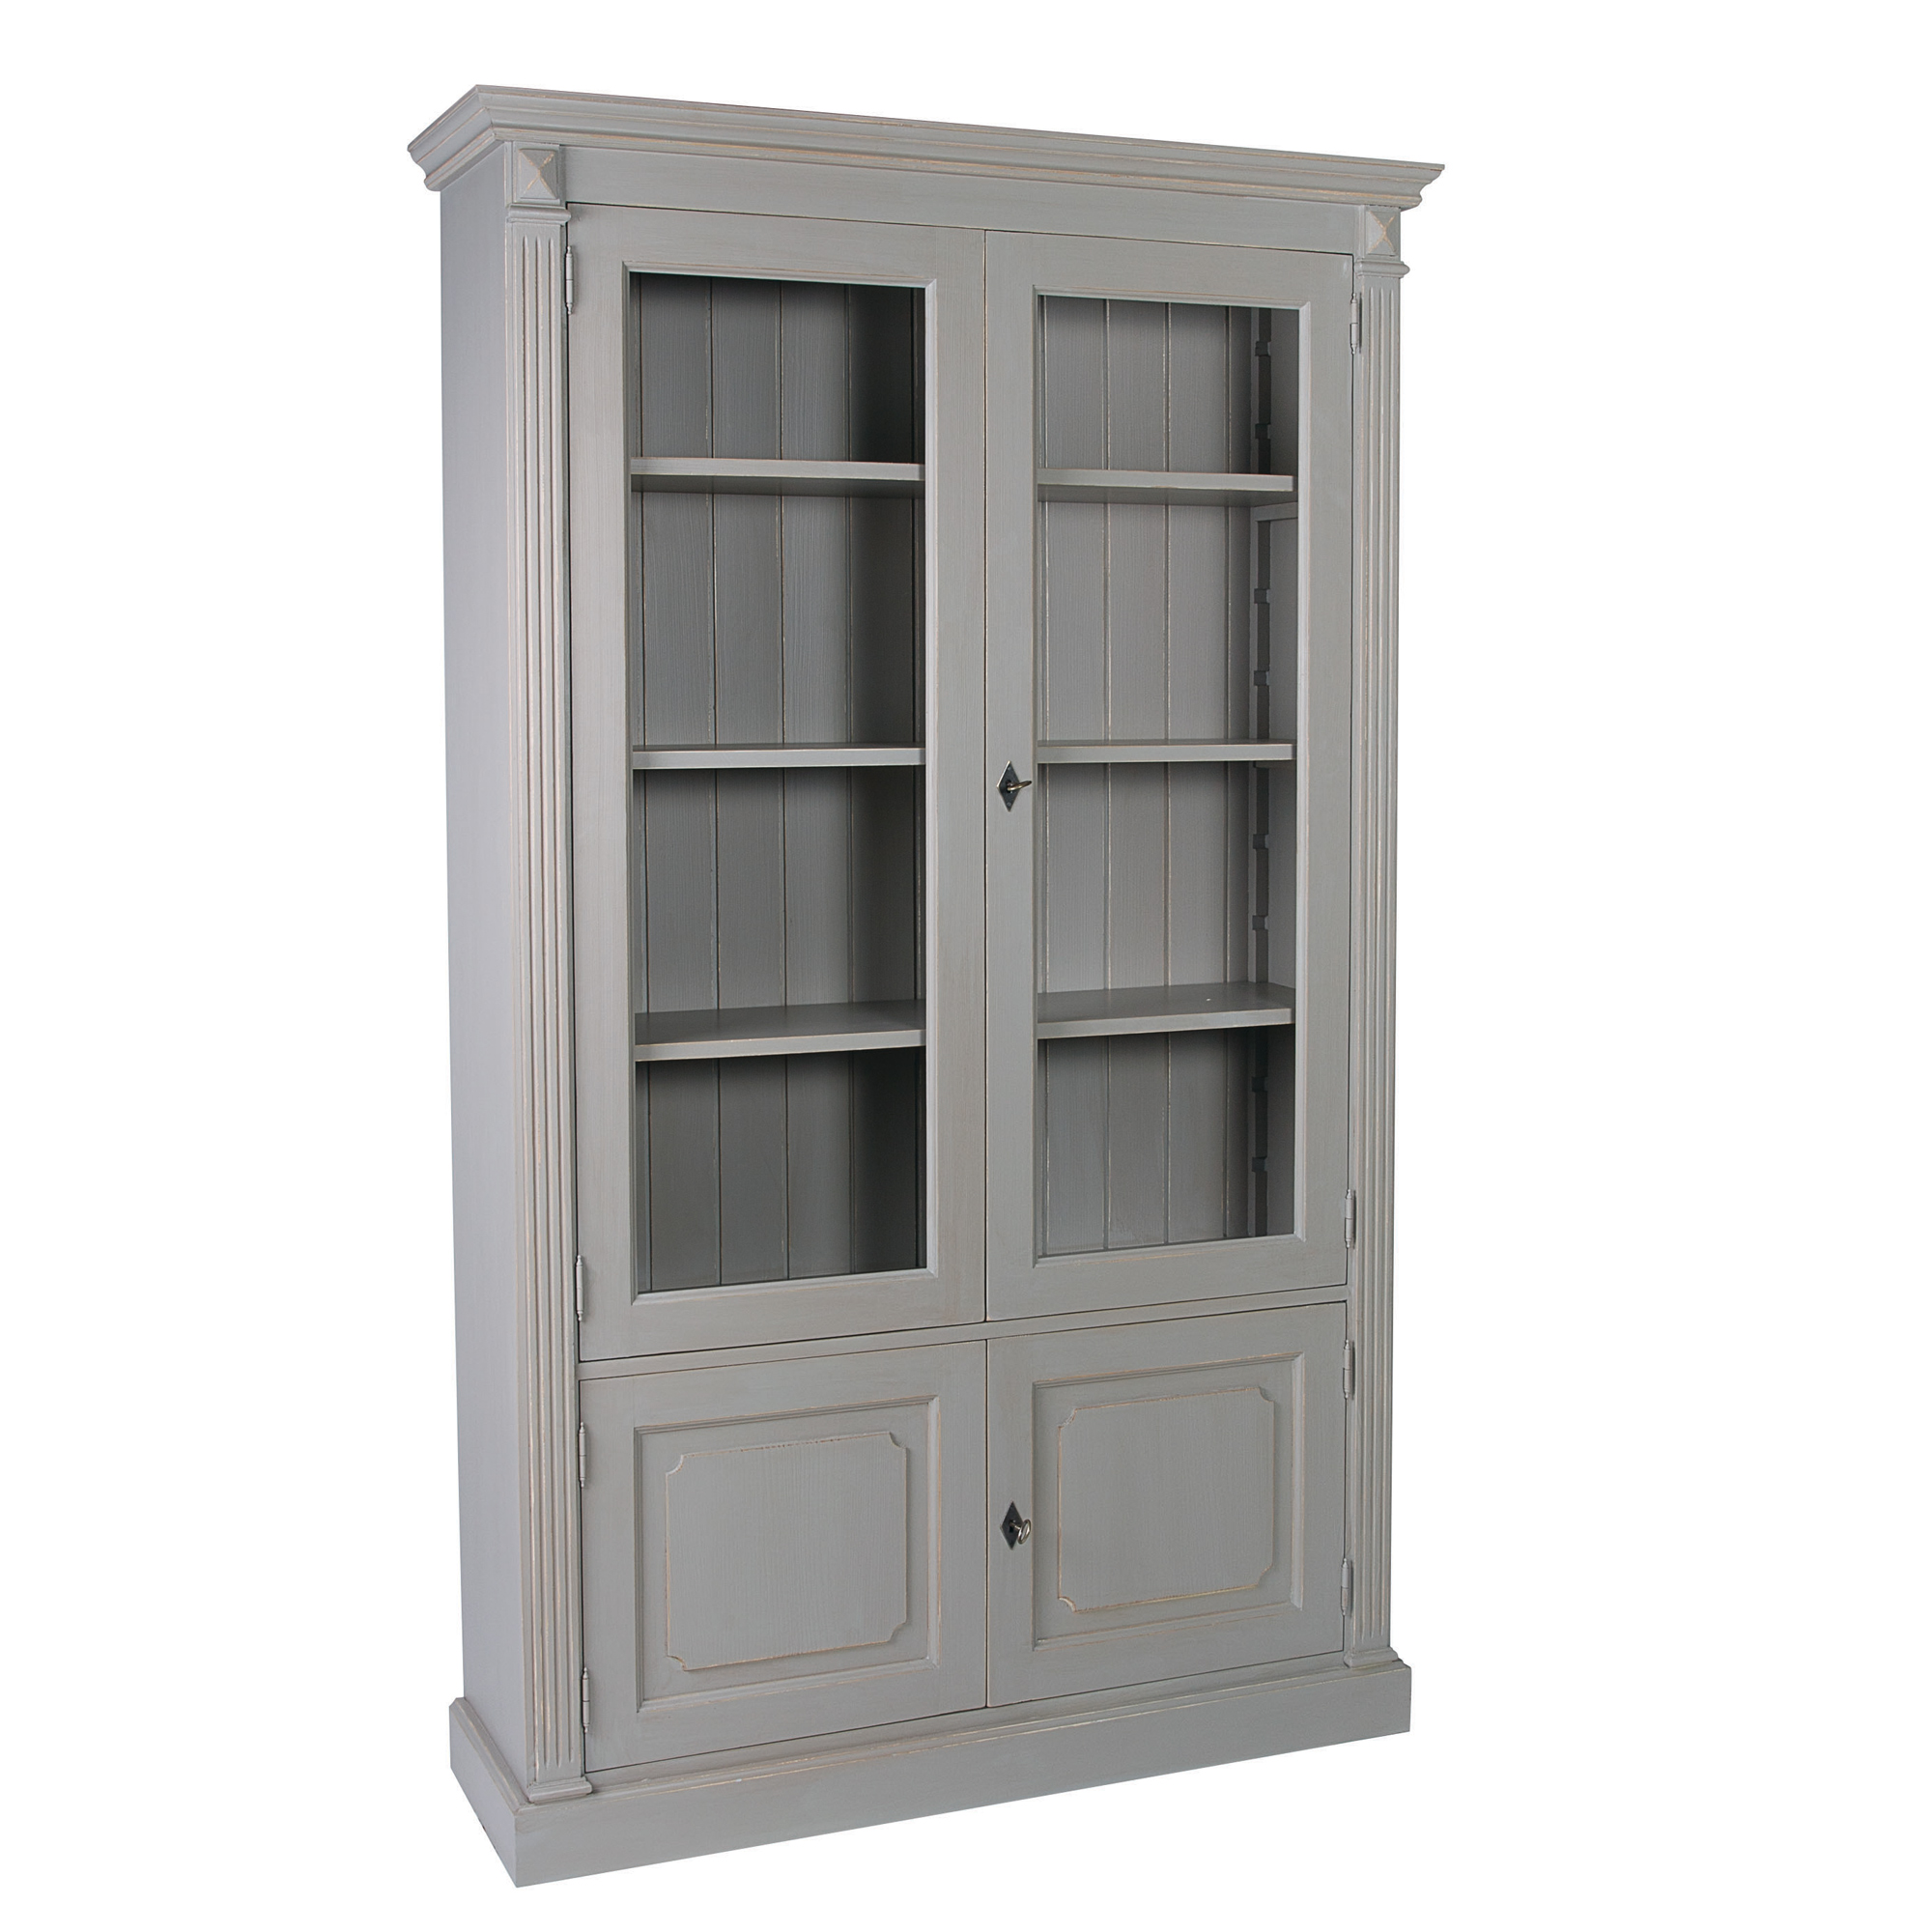 French Wide Fluted Glazed Bookcase with Cupboard